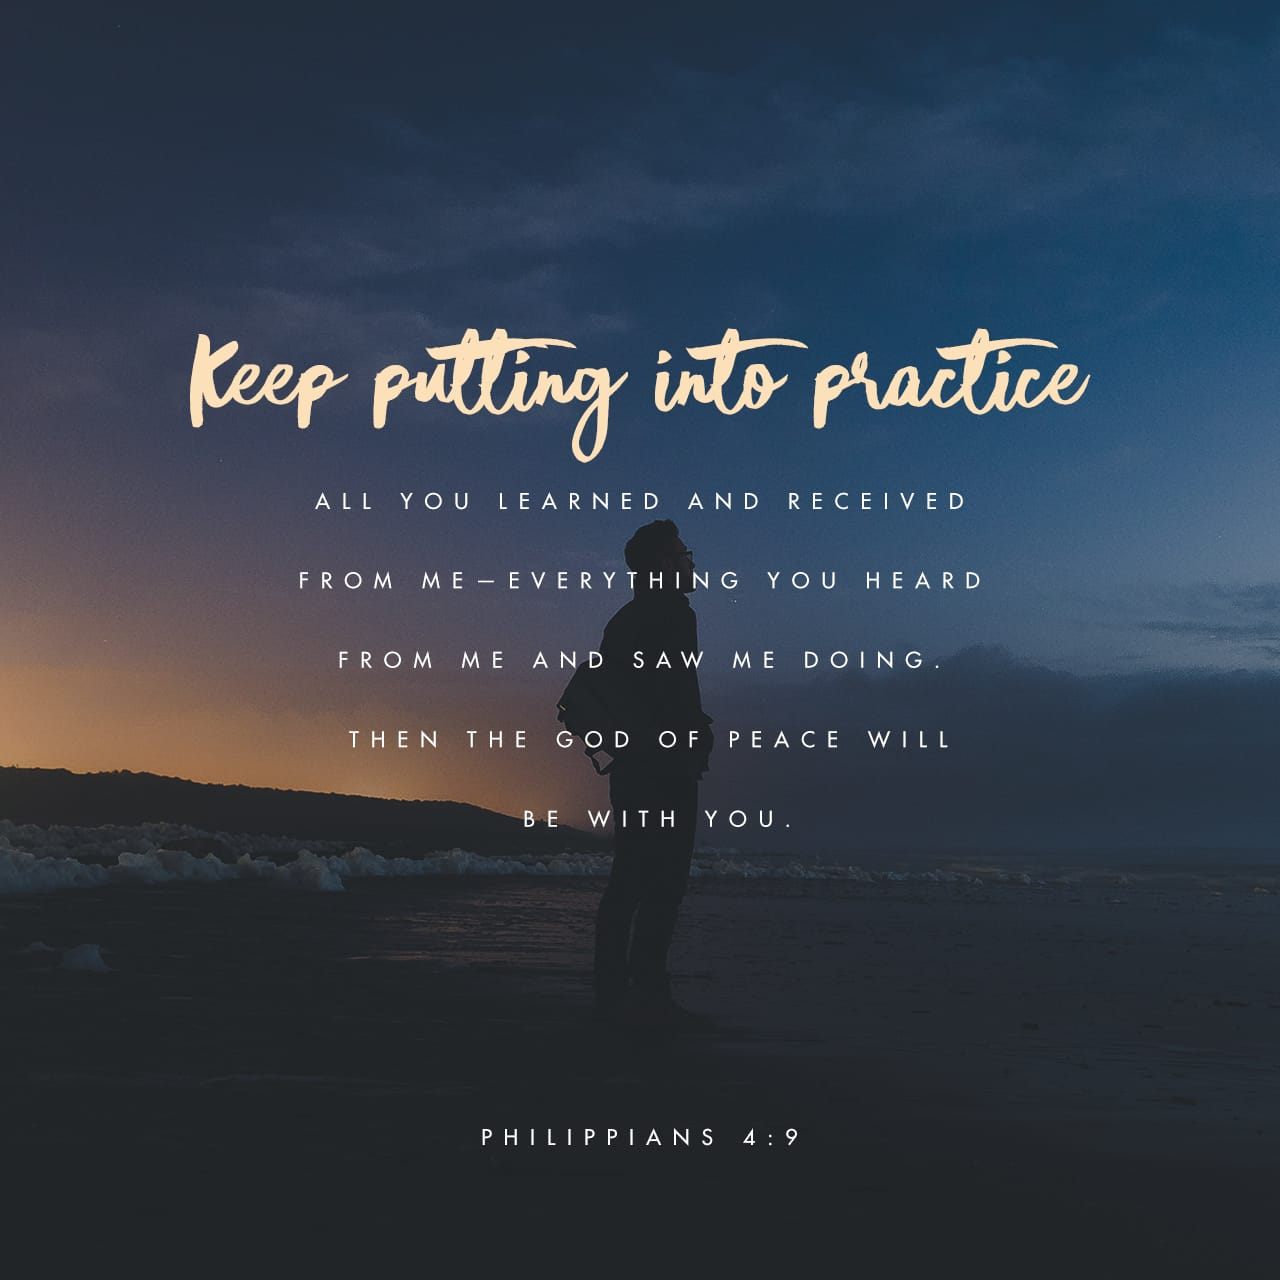 Philippians 4:9 Those things, which ye have both learned, and received, and heard, and seen in me, do: and the God of peace shall be with you. | King James Version (KJV)